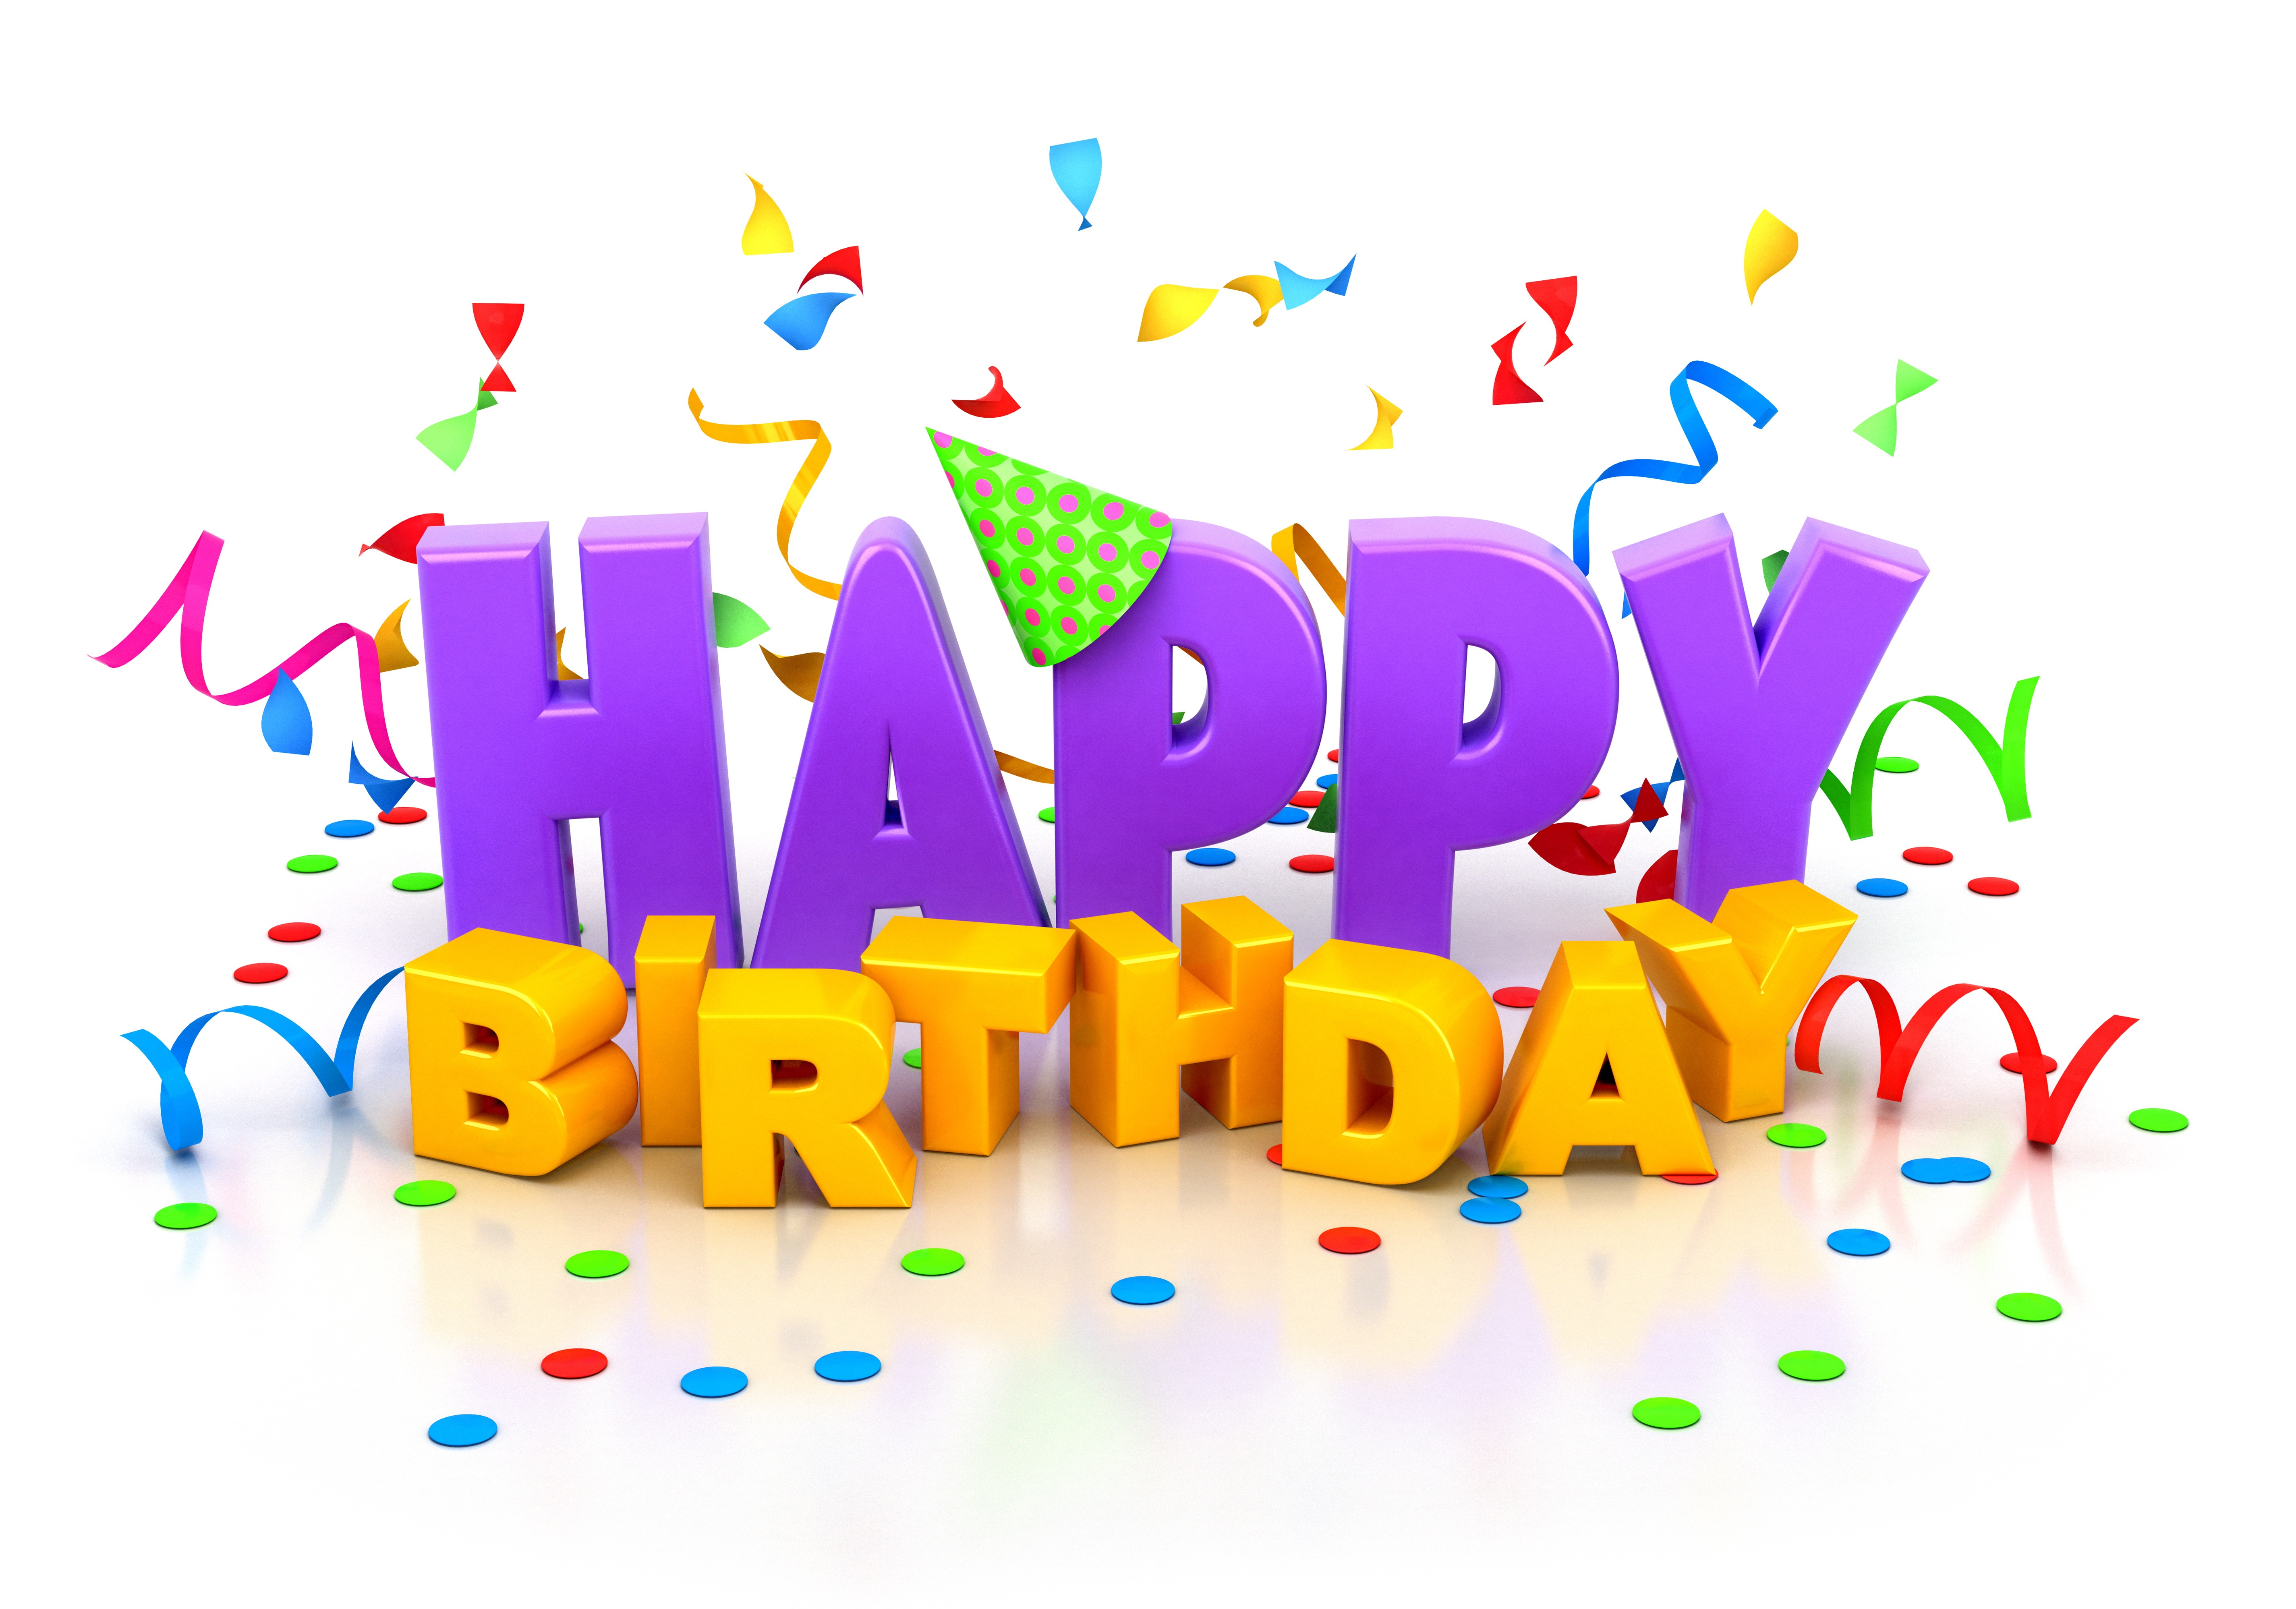 happy birthday to you i wish you all the best ; image-28ul2l0